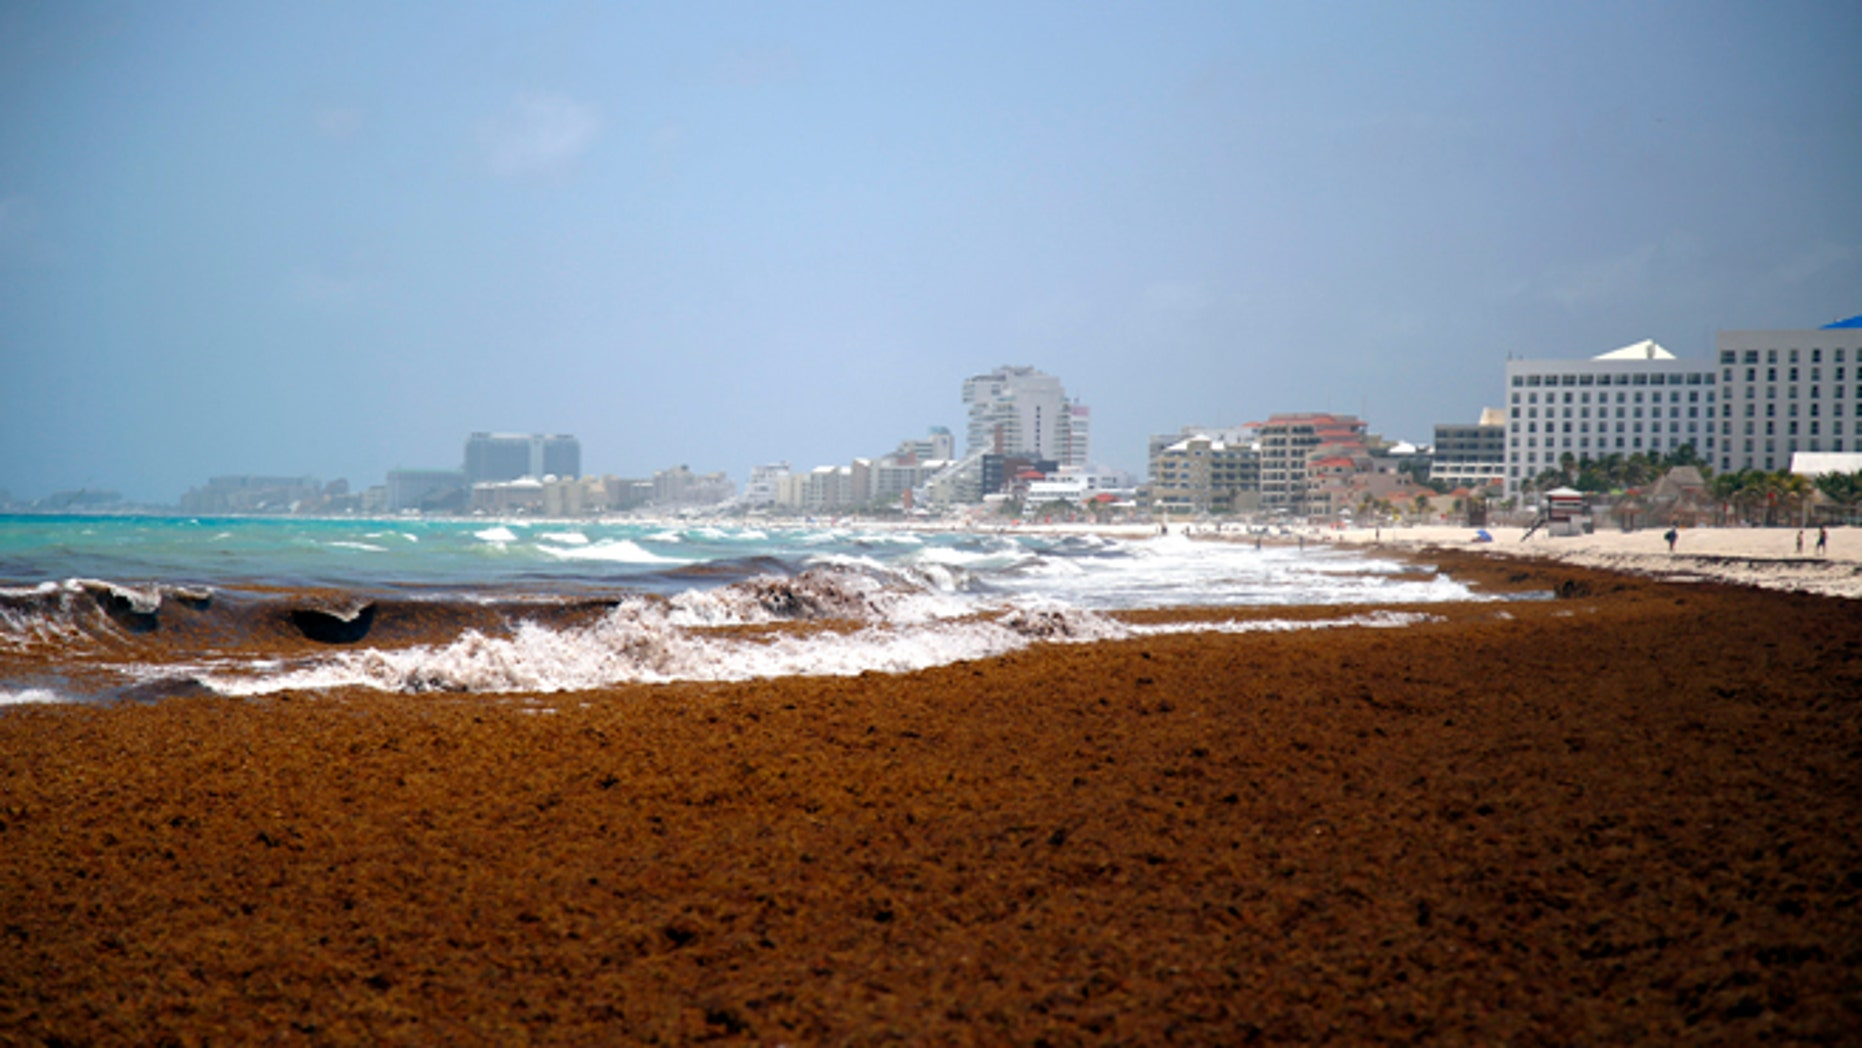 Large quantities of seaweed blanket the beach in the Mexican resort city of Cancun, Mexico, Wednesday, July 15, 2015. The seaweed invasion, which appears to have hit most of the Caribbean this year, is generally considered a nuisance and has prompted some hotel cancellations from tourists but scientists consider washed-up seaweed an important part of the coastal eco-system and plays a role in beach nourishment although some scientists have also associated the large quantities of seaweed this year in the Caribbean region with higher than normal temperatures and low winds, both of which influence ocean currents, and they draw links to global climate change. (AP Photo/ Israel Leal)